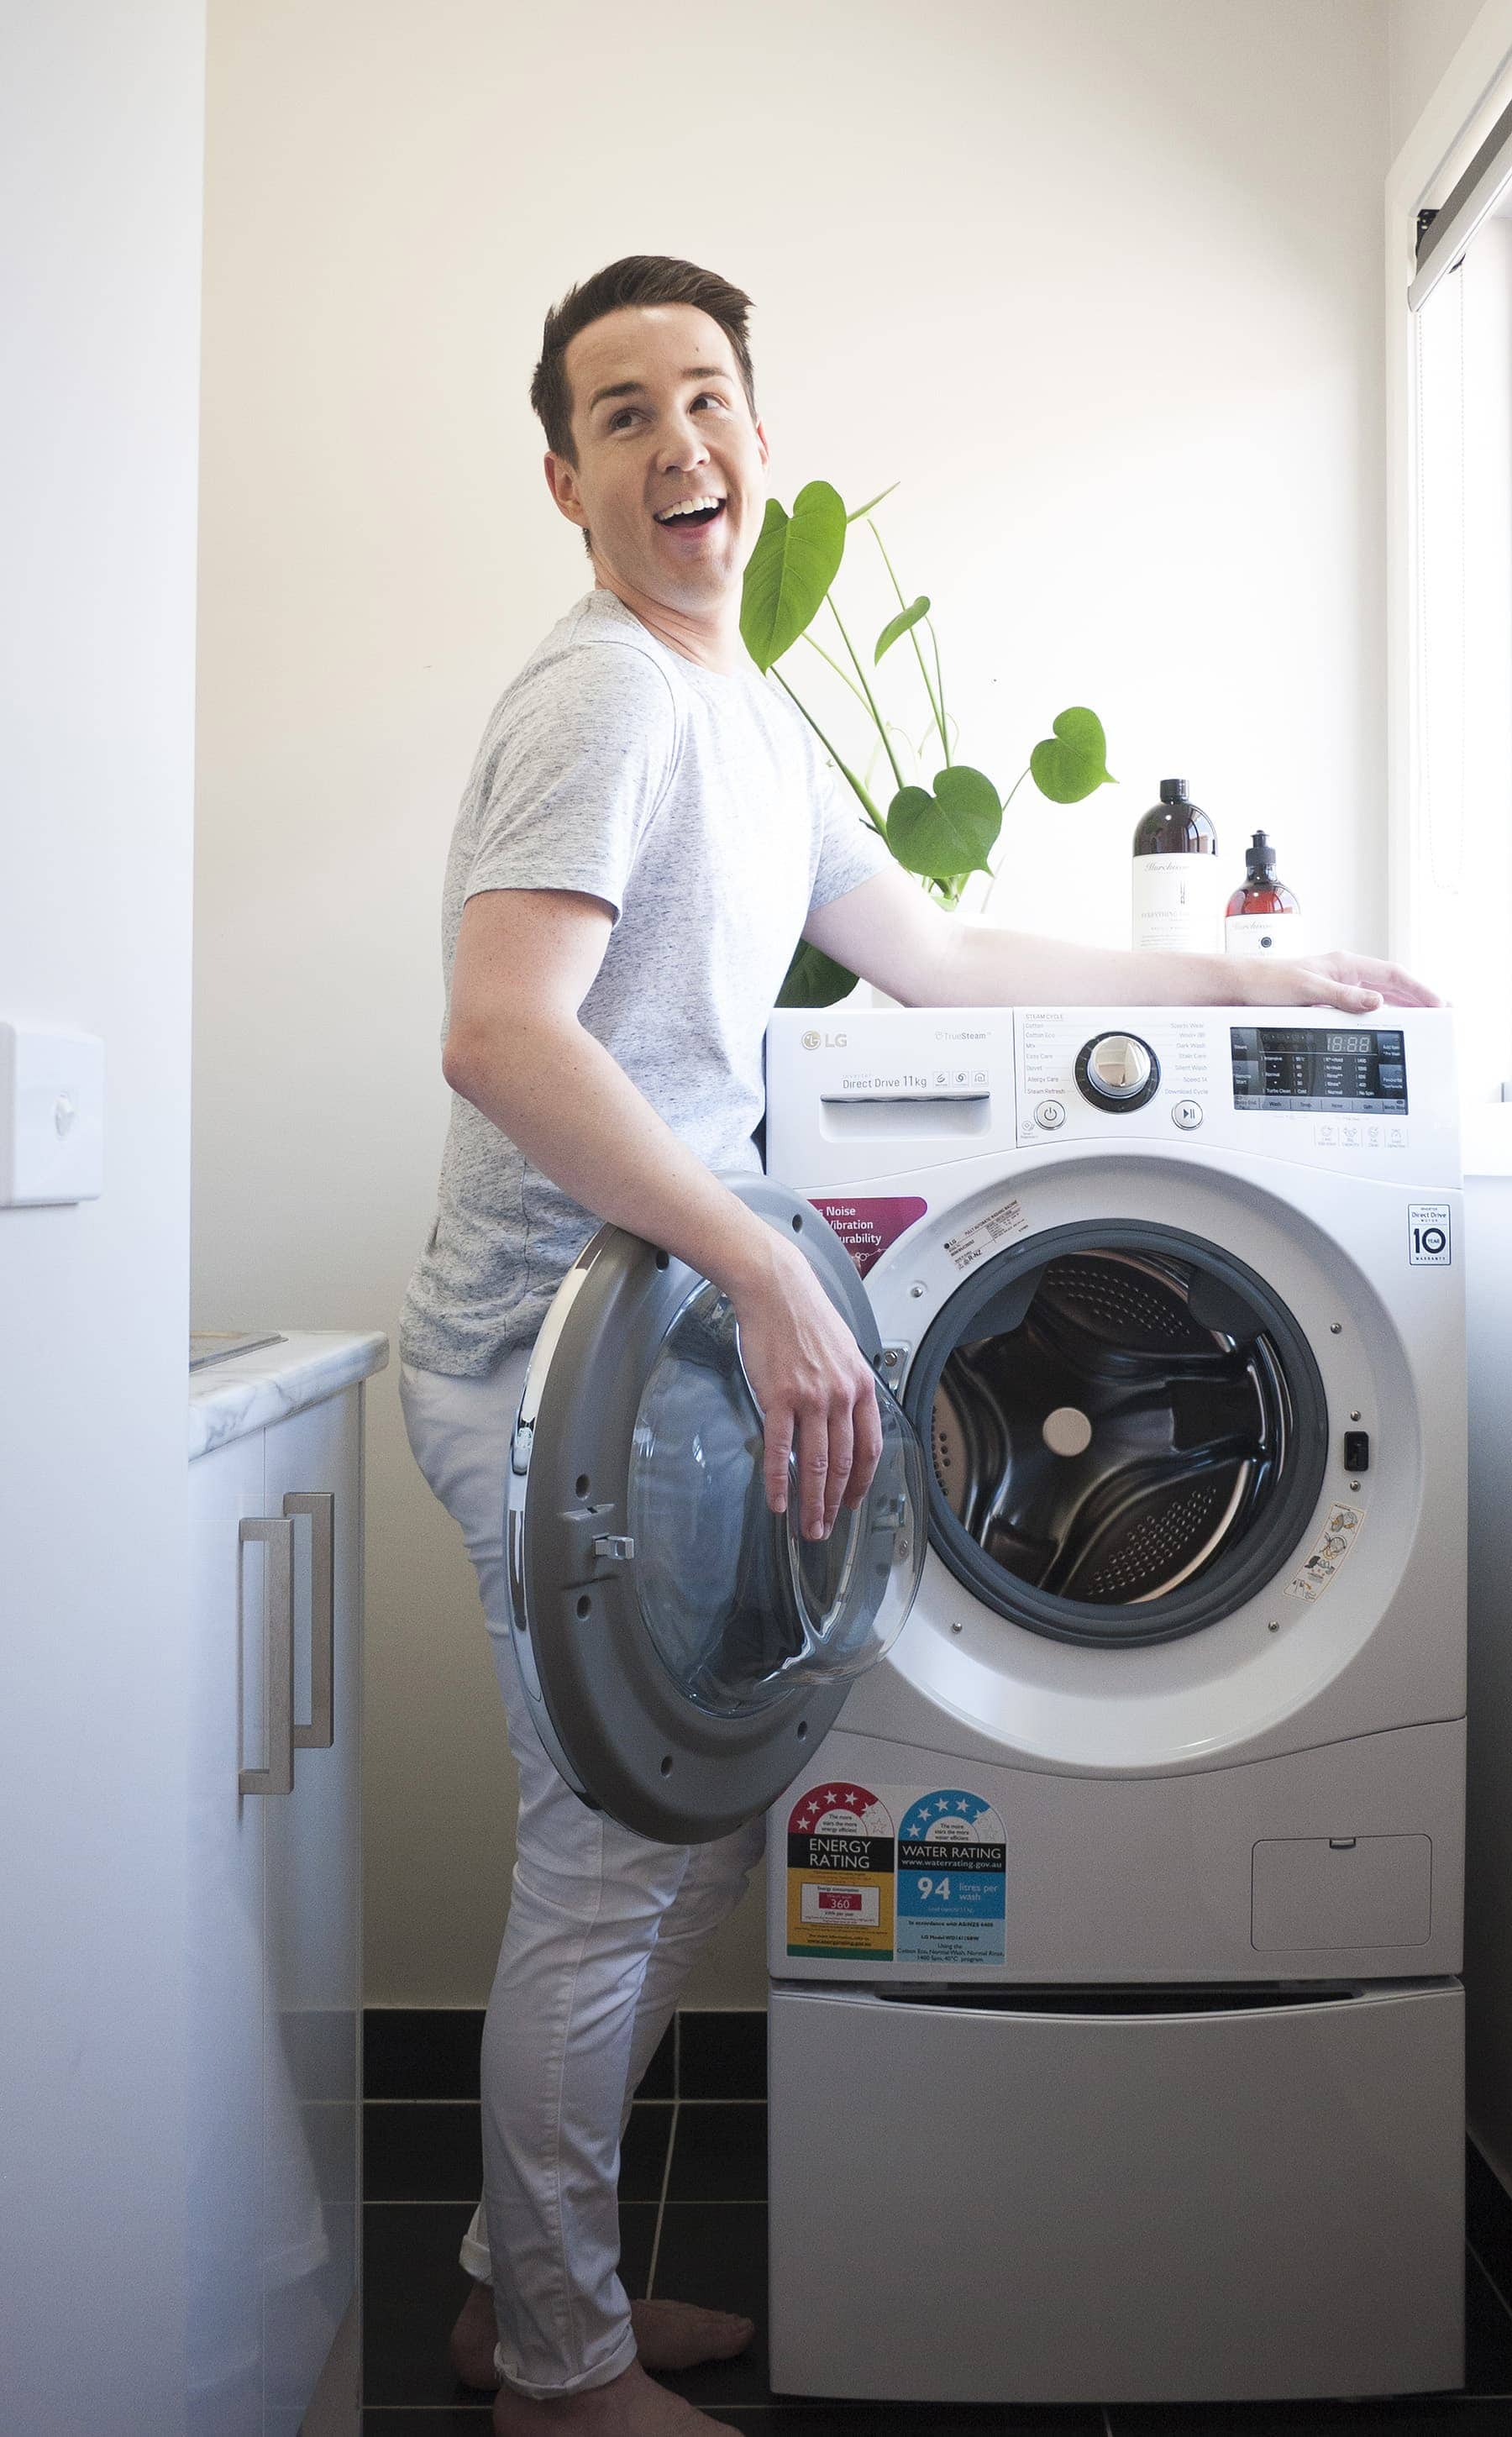 Chris Carroll LG TwinWash washing machine review by tlc interiors